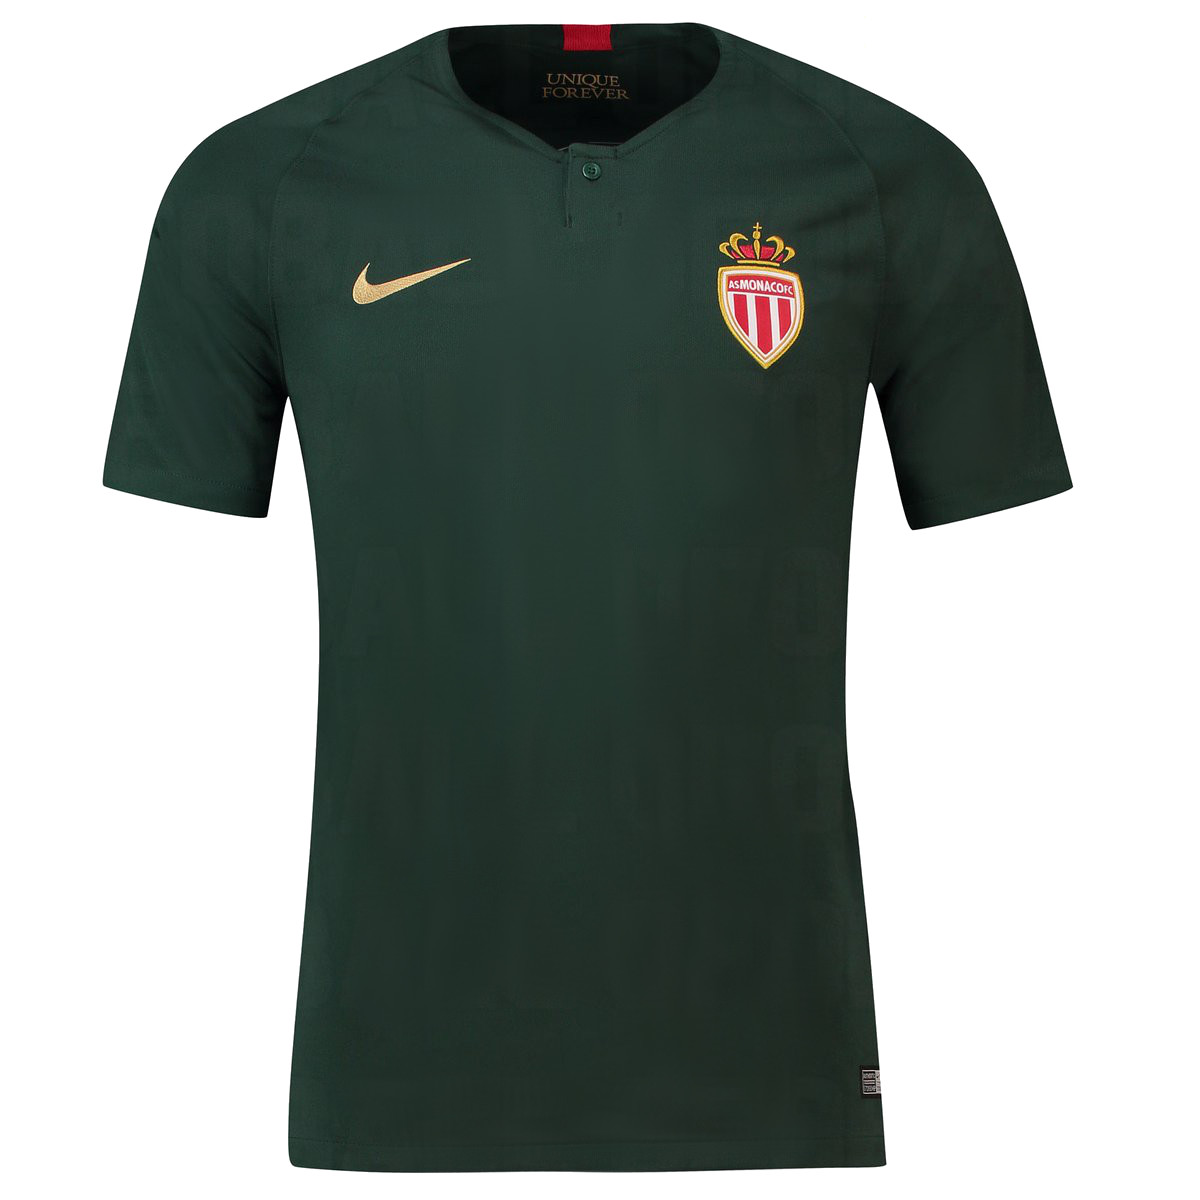 AS Monaco 2019 dos maillot de football extérieur